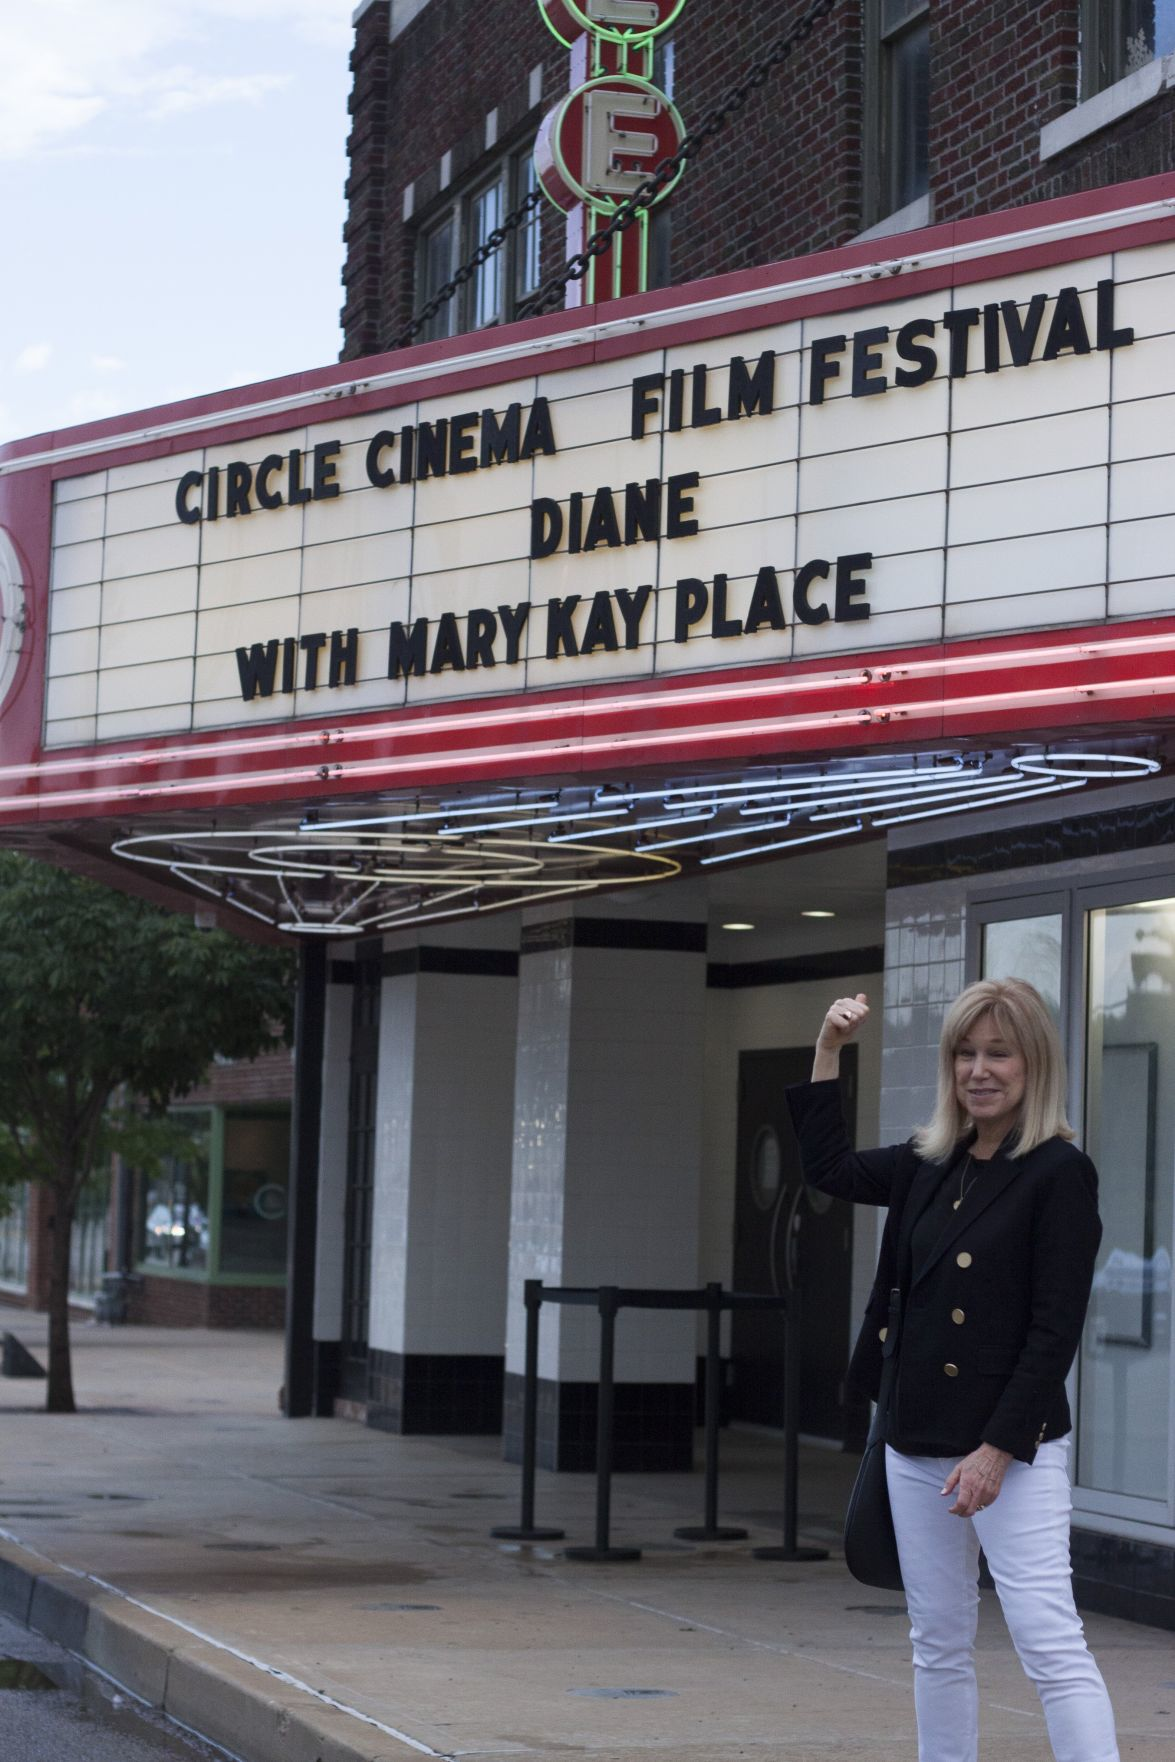 Circle Cinema Film Festival